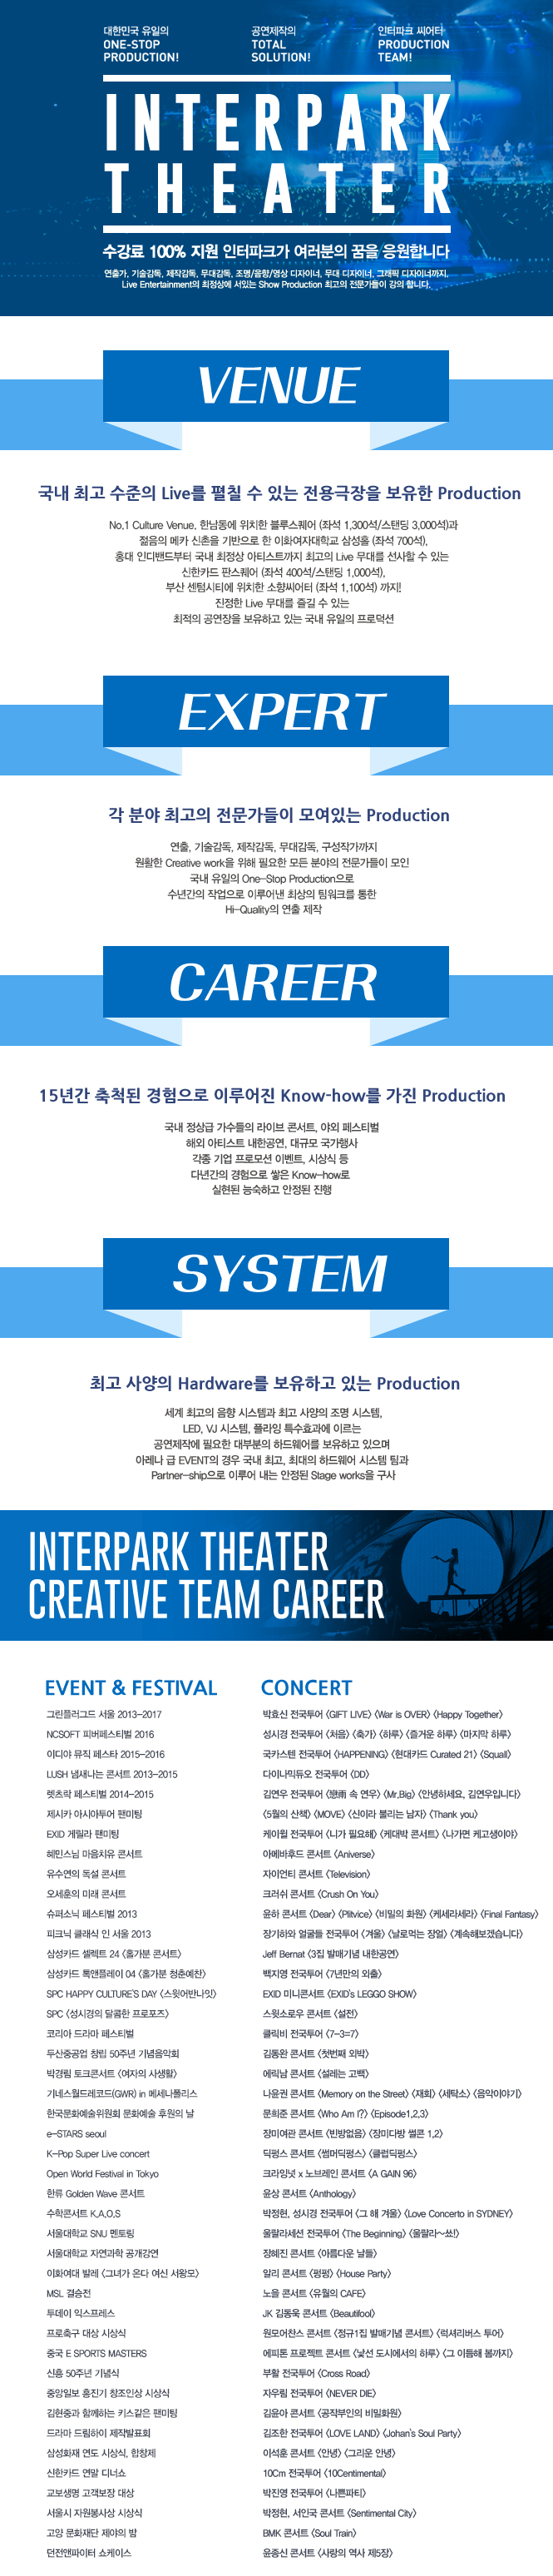 Interpark Theater